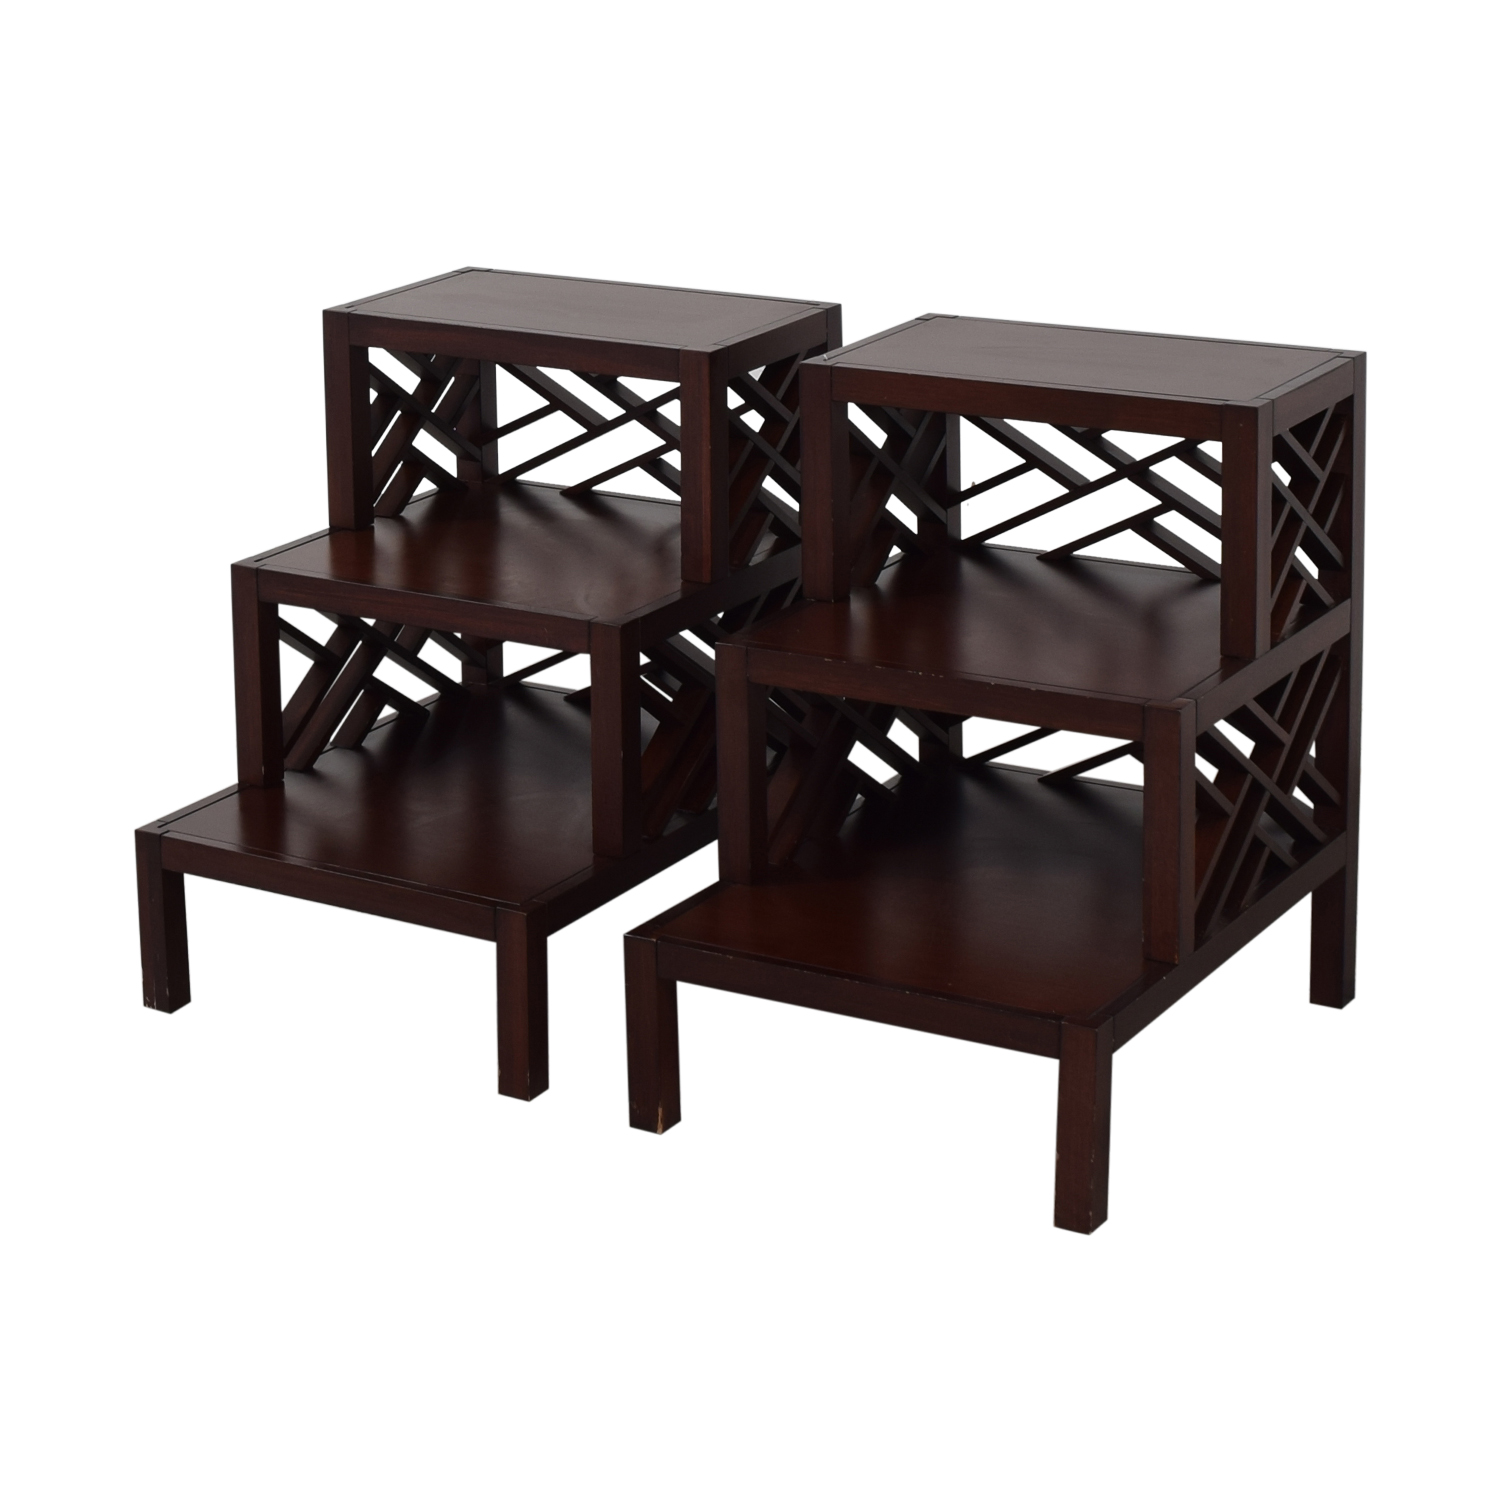 Williams Sonoma Accent Tables / End Tables